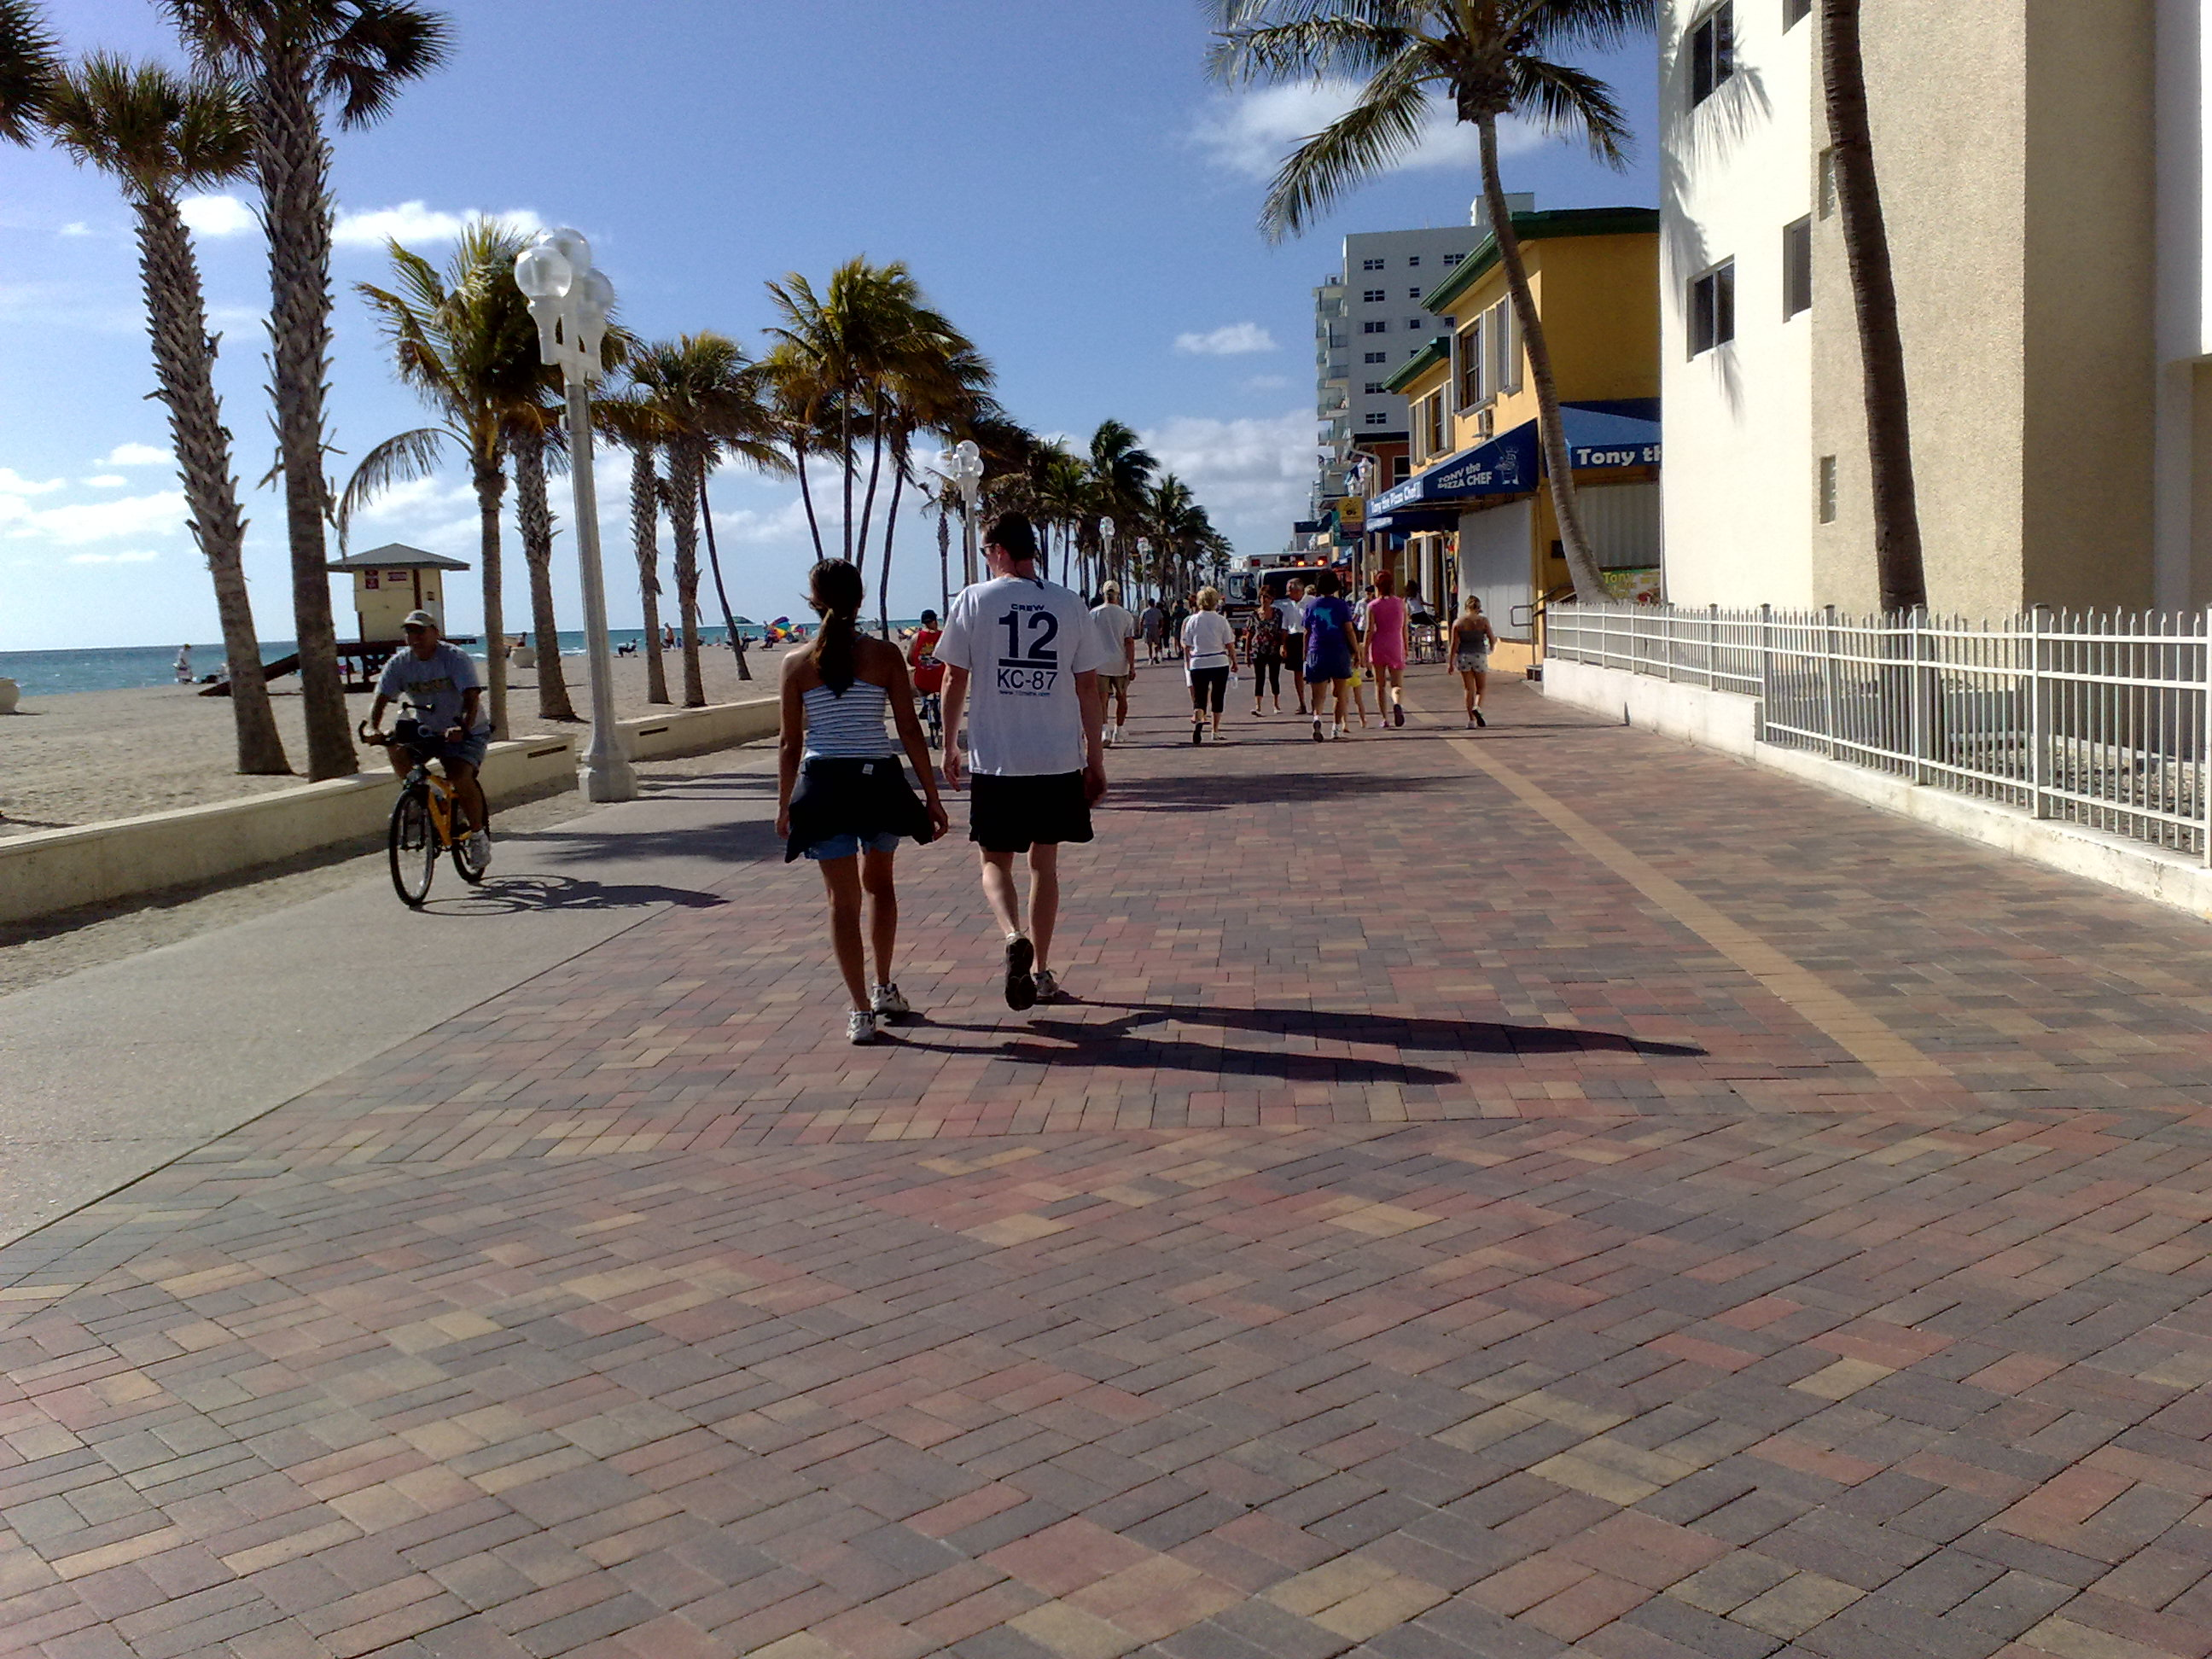 things to do Hollywood, Florida boardwalk by beach